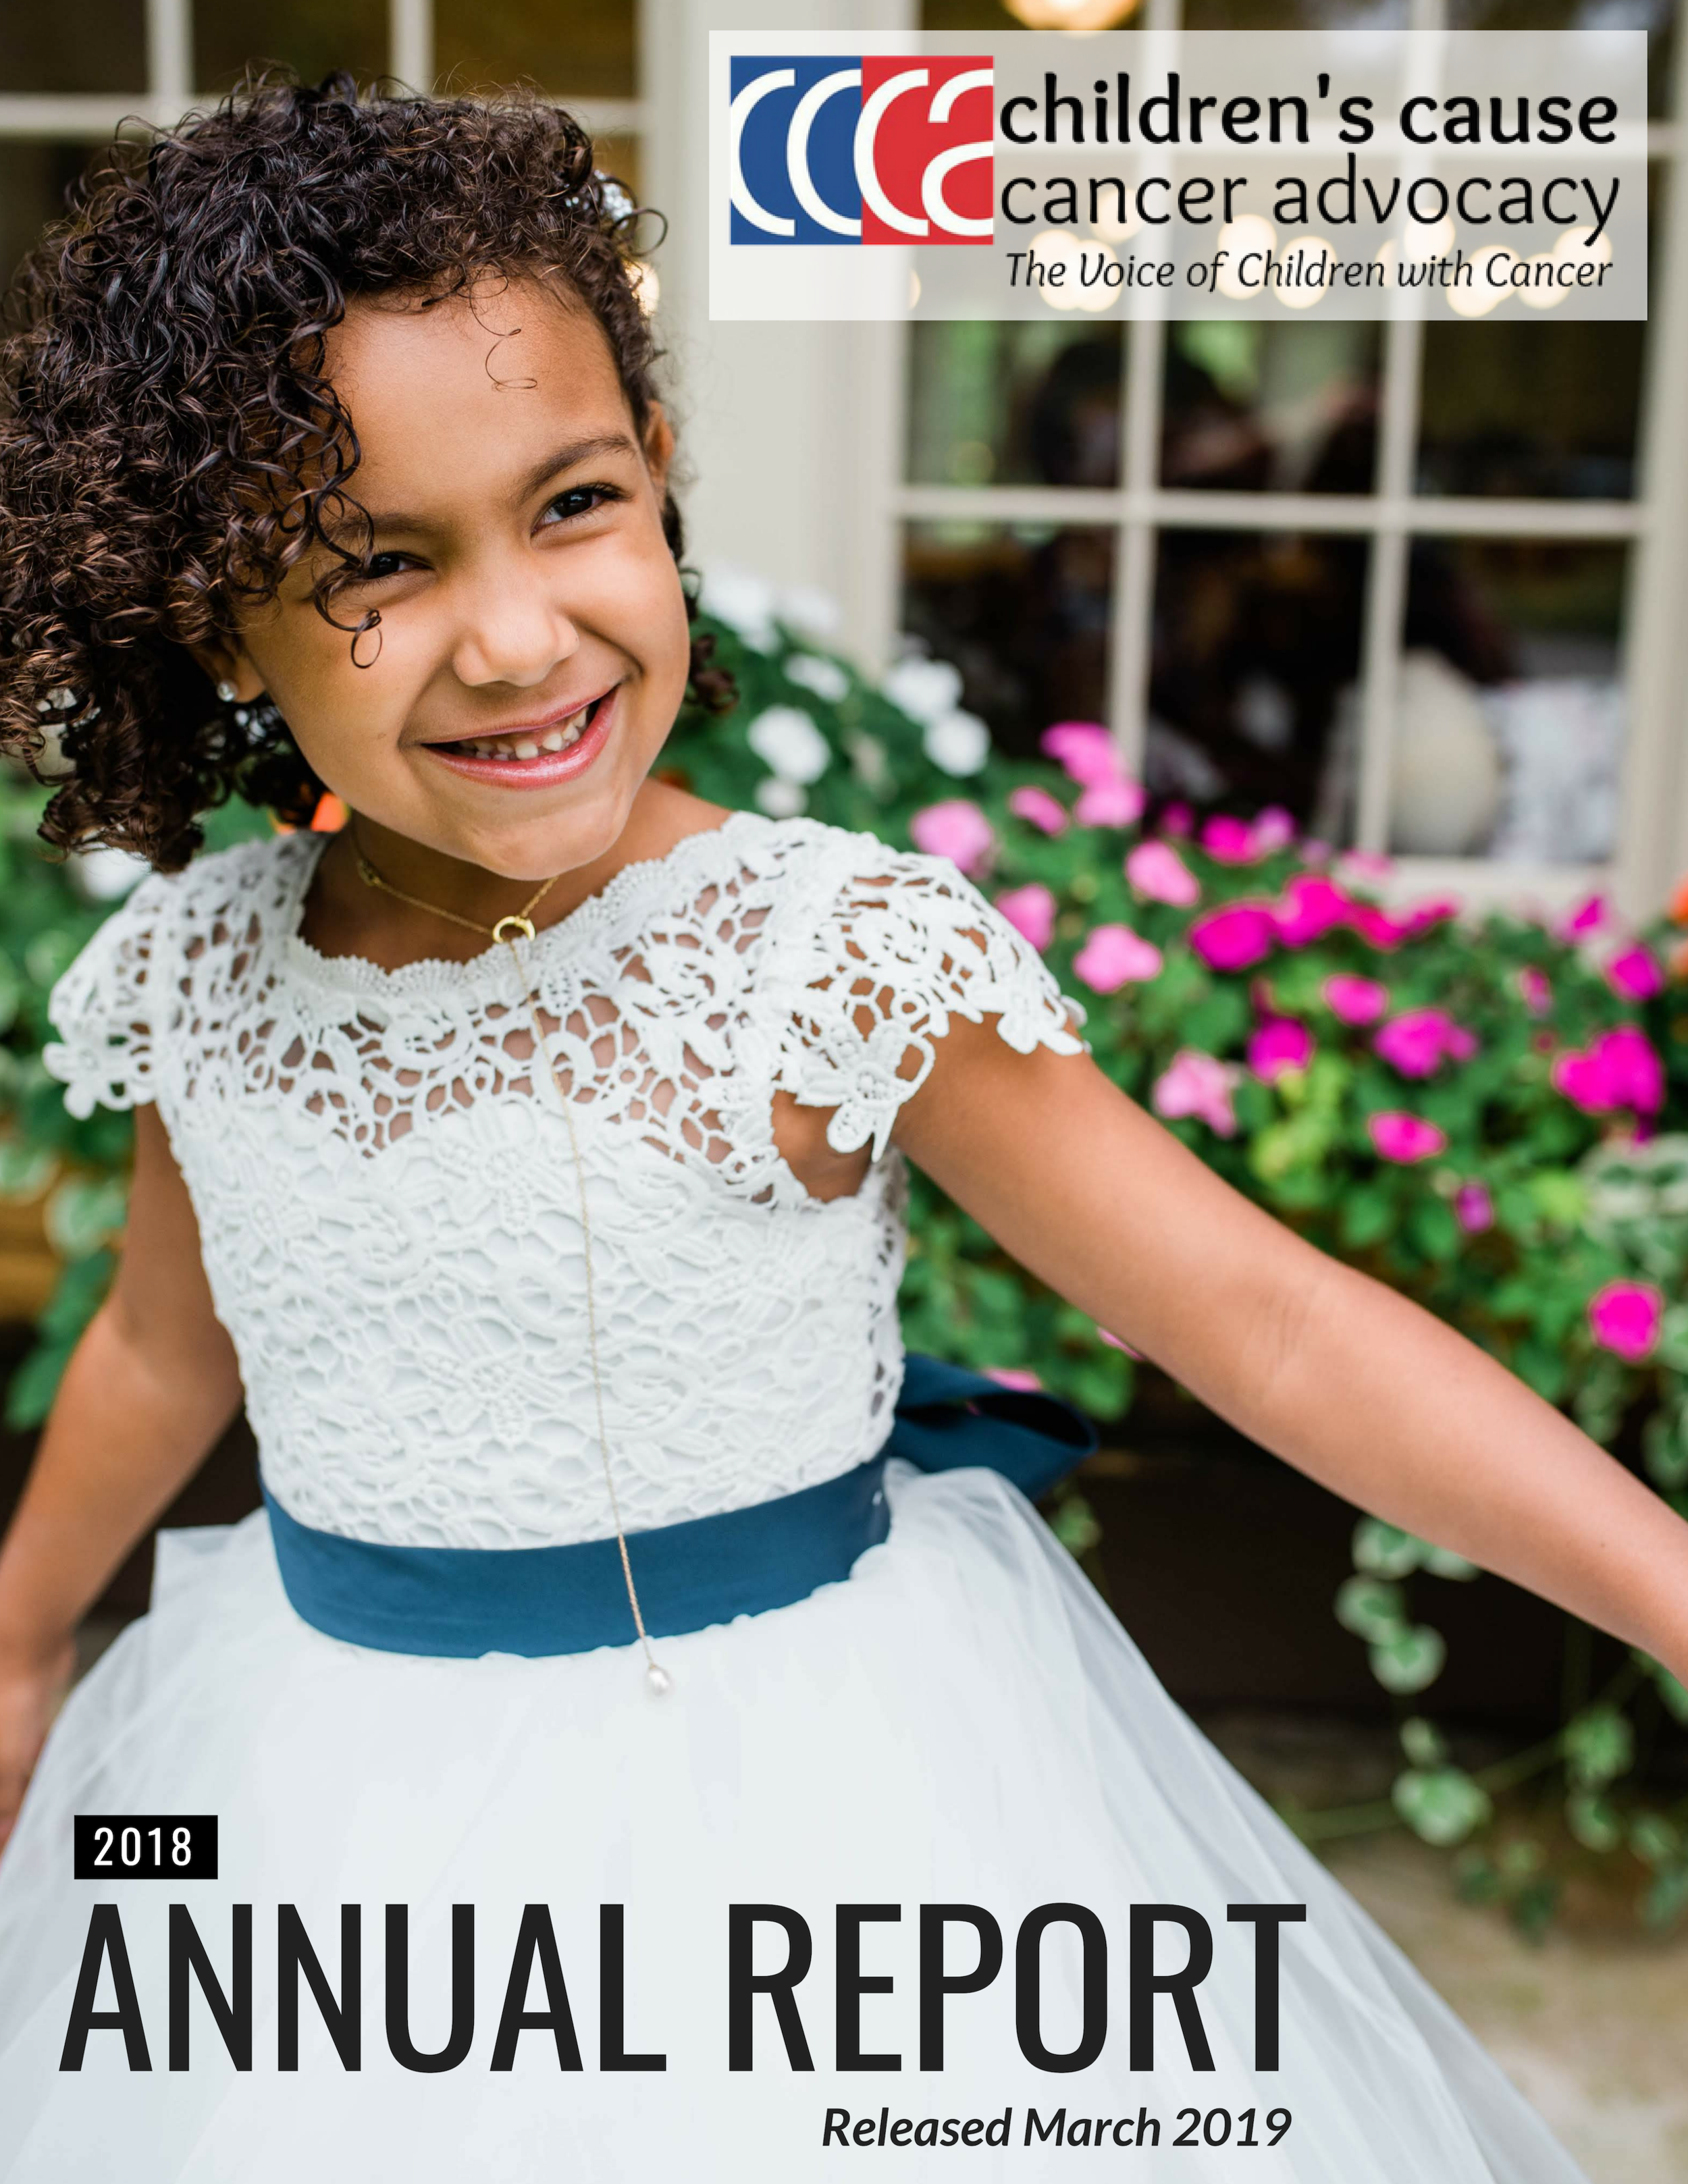 Click the cover image to view our 2018 annual report.